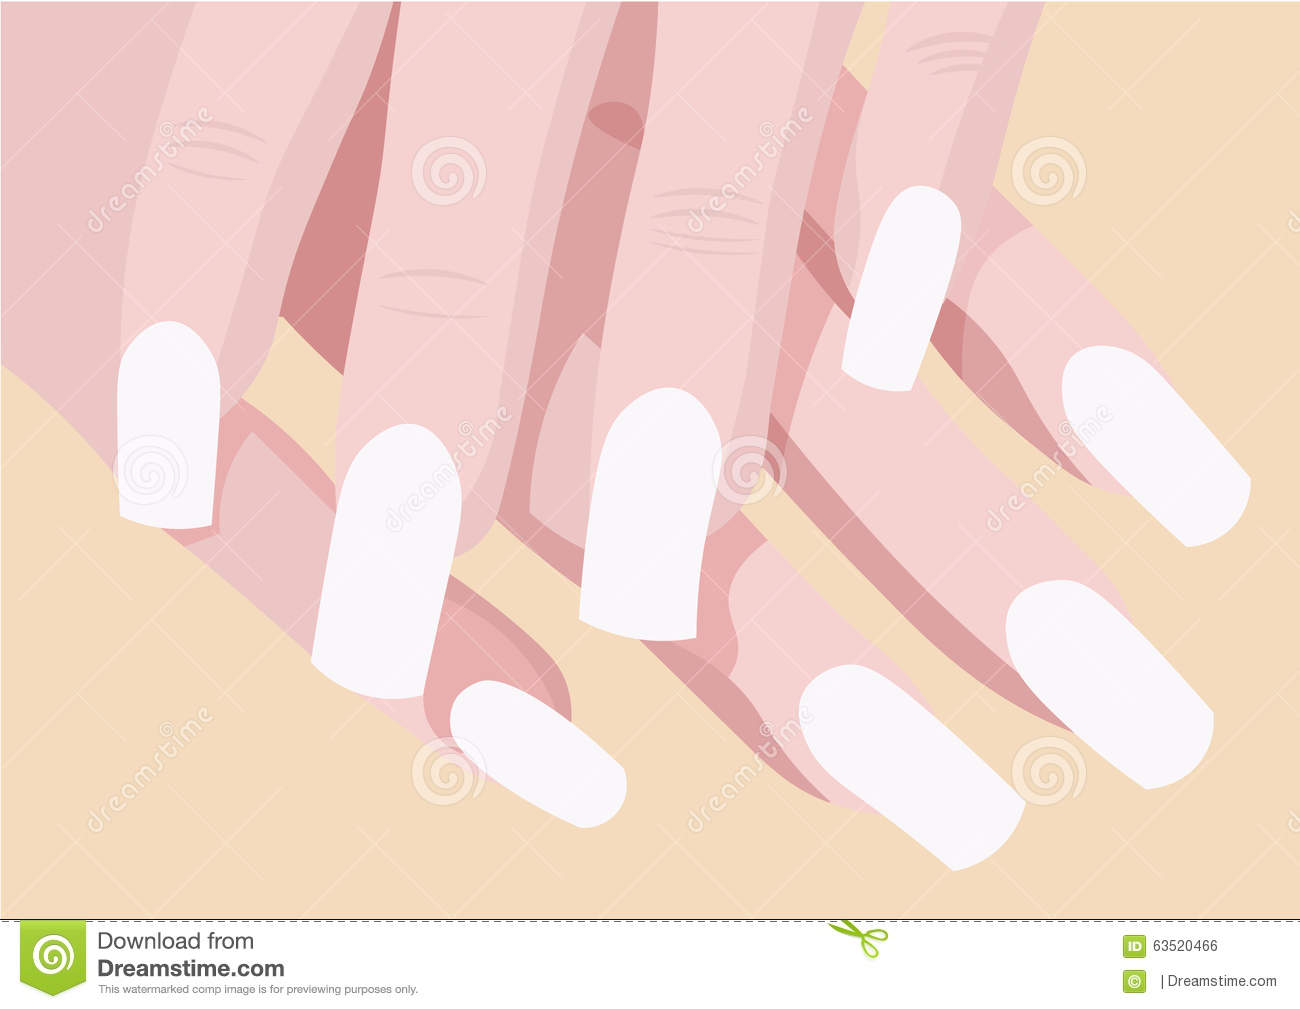 Ladys Hands And Manicure Fingers With Place For Art Nail Design ...